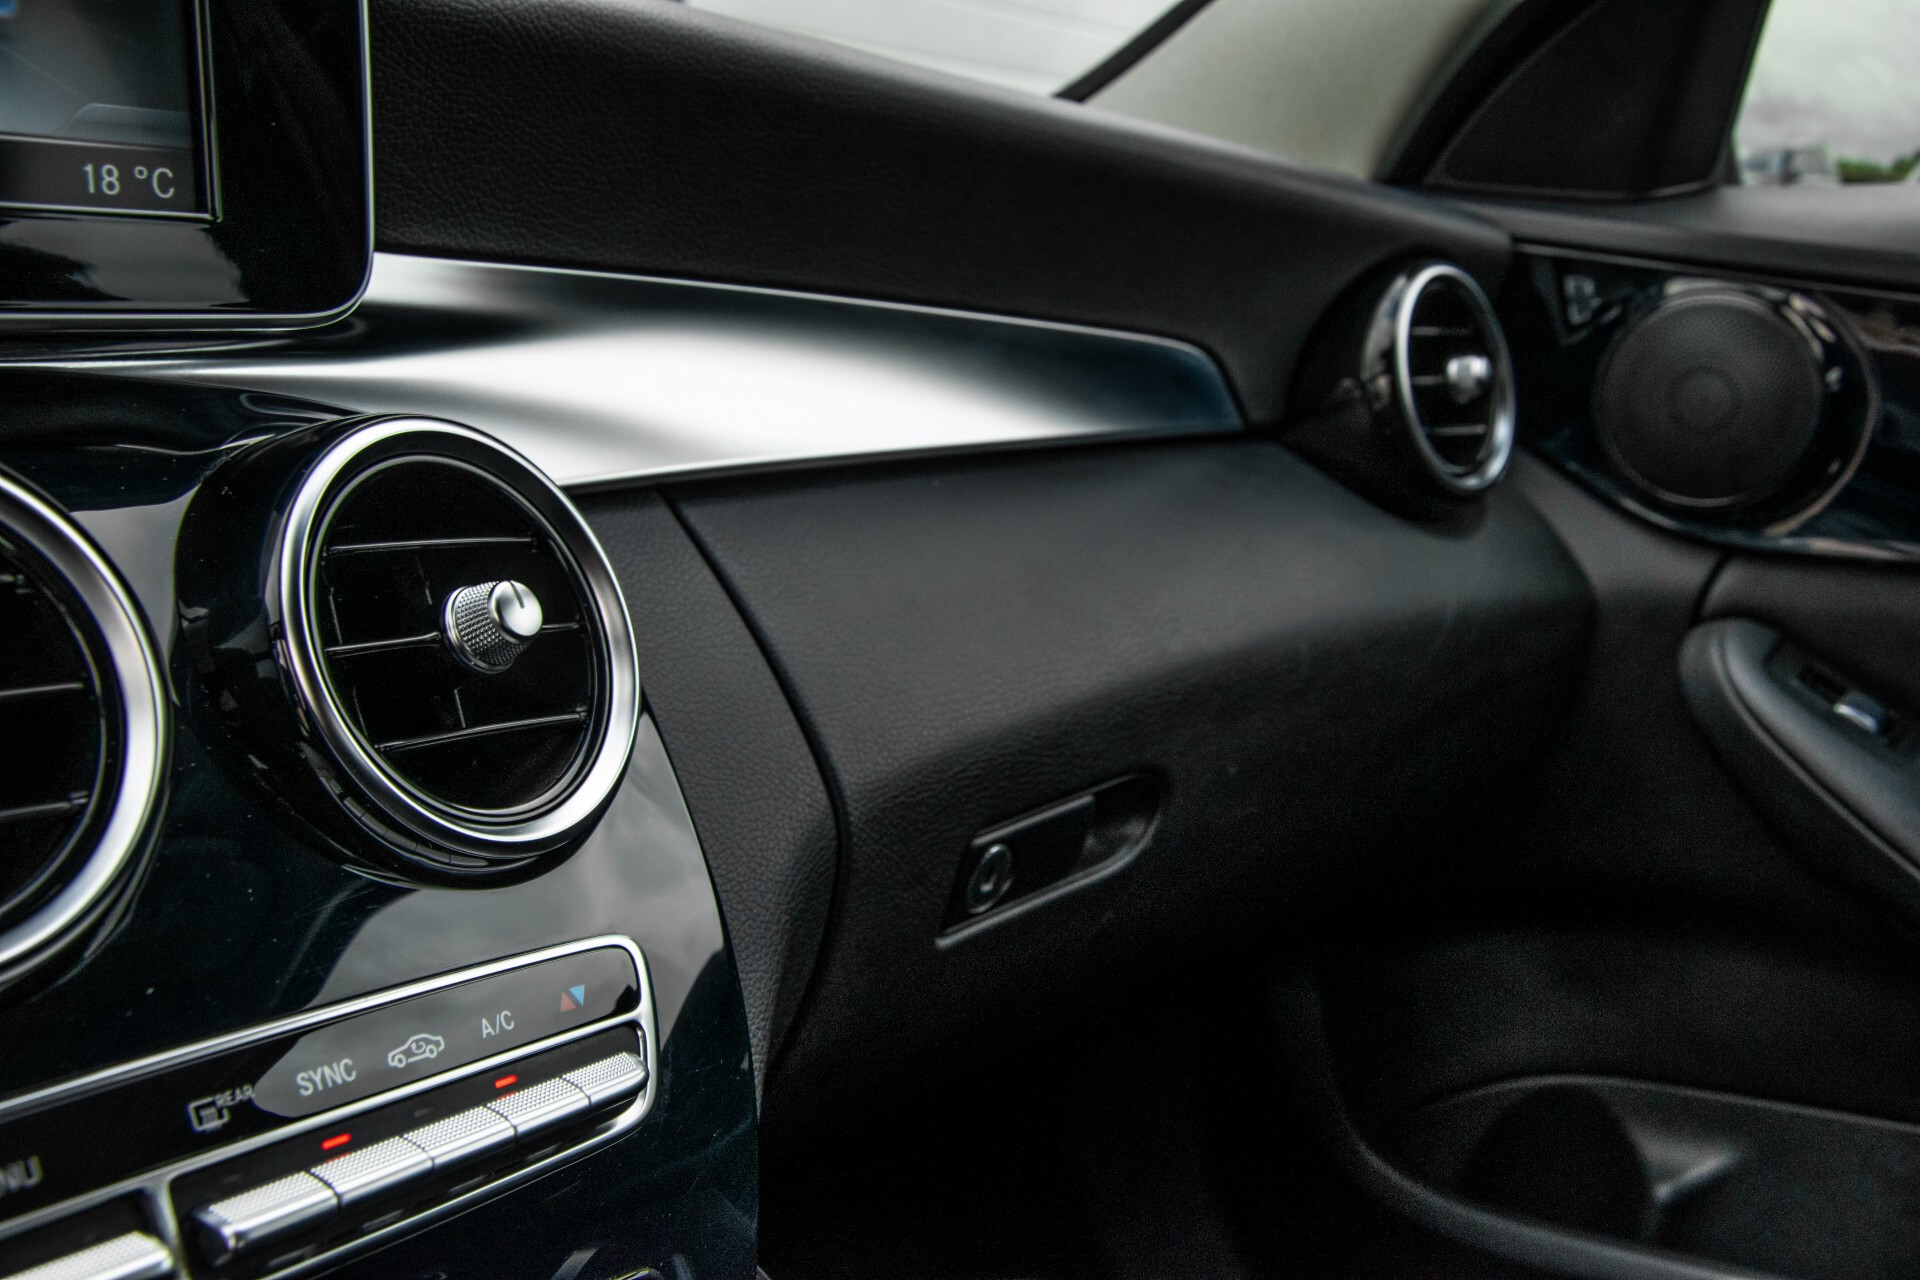 Mercedes-Benz C-Klasse 180 Bluetec Lease Edition Intelligent Light System/Cruise Control/Navi Foto 18